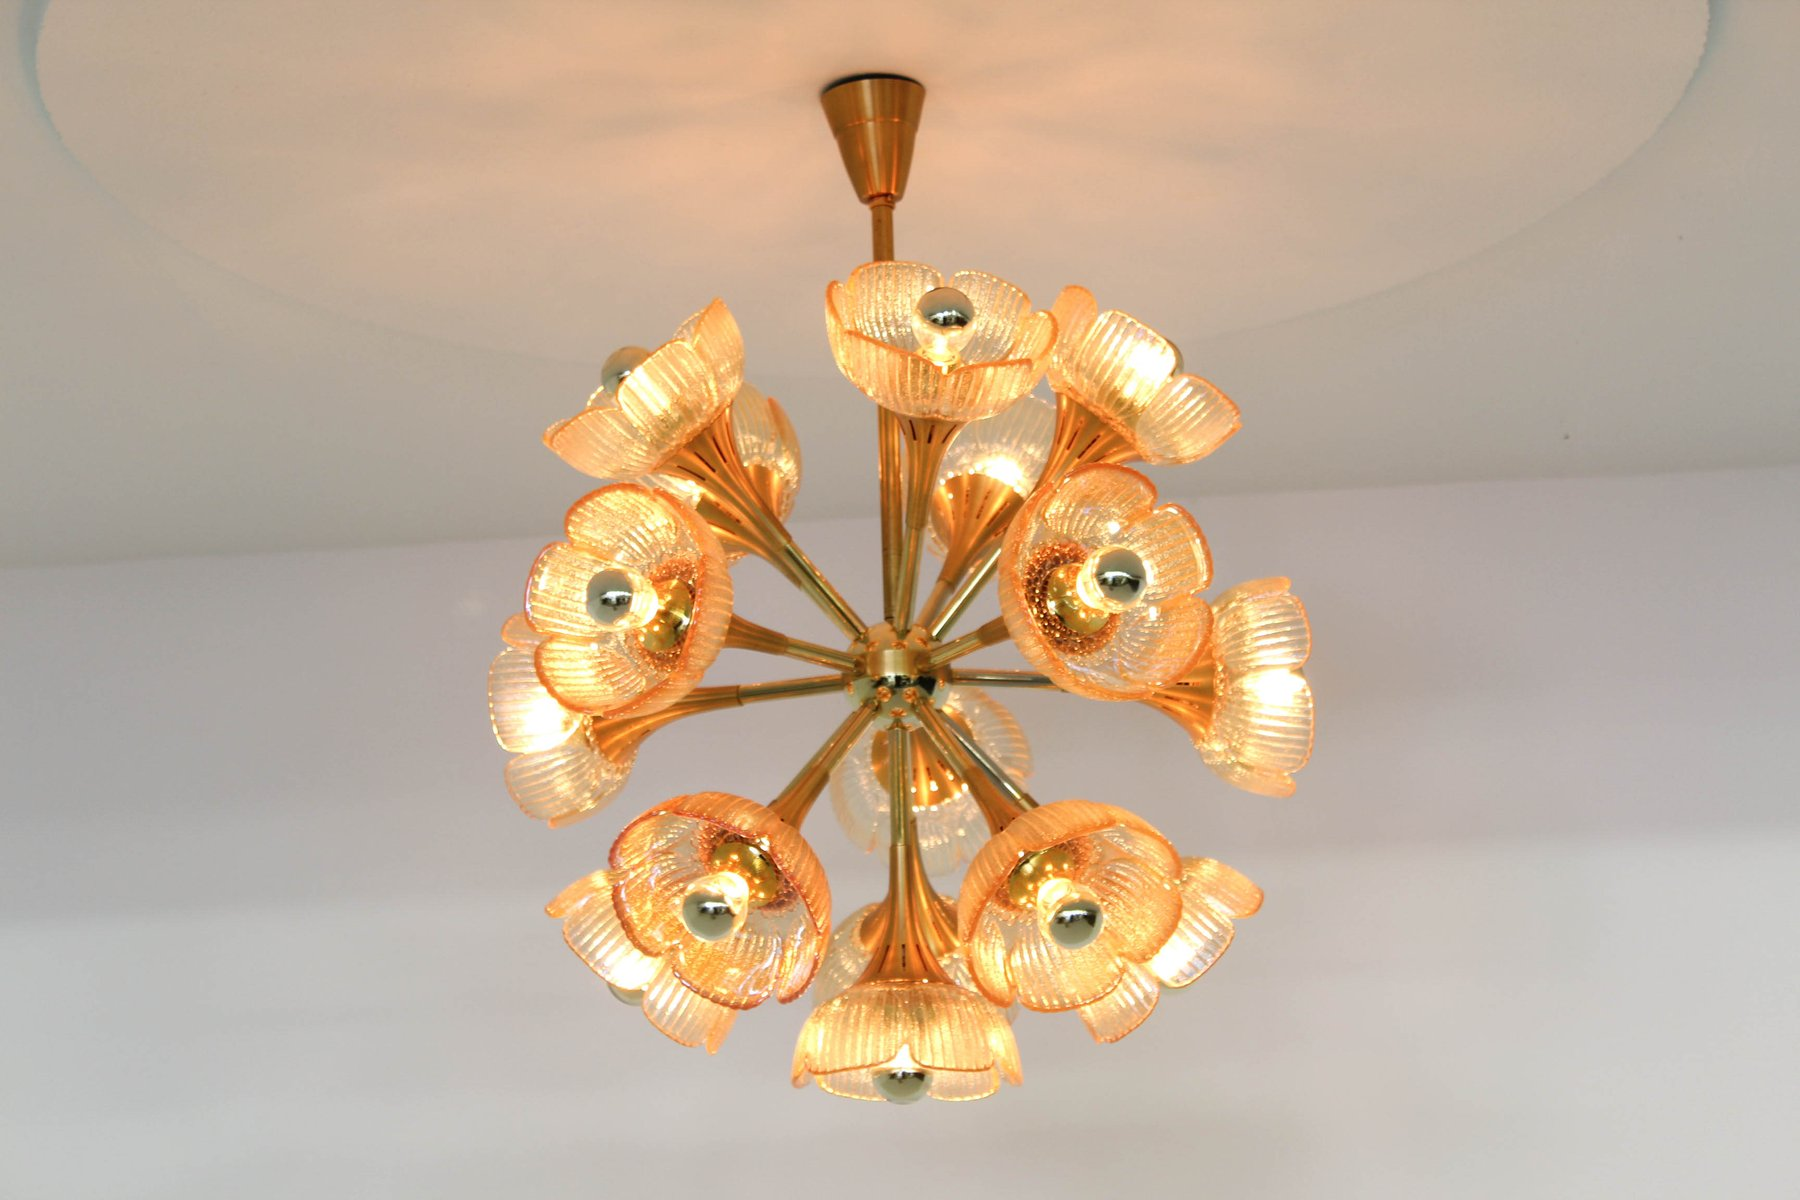 Italian Floral Midcentury Murano Glass Chandelier 1960s for sale